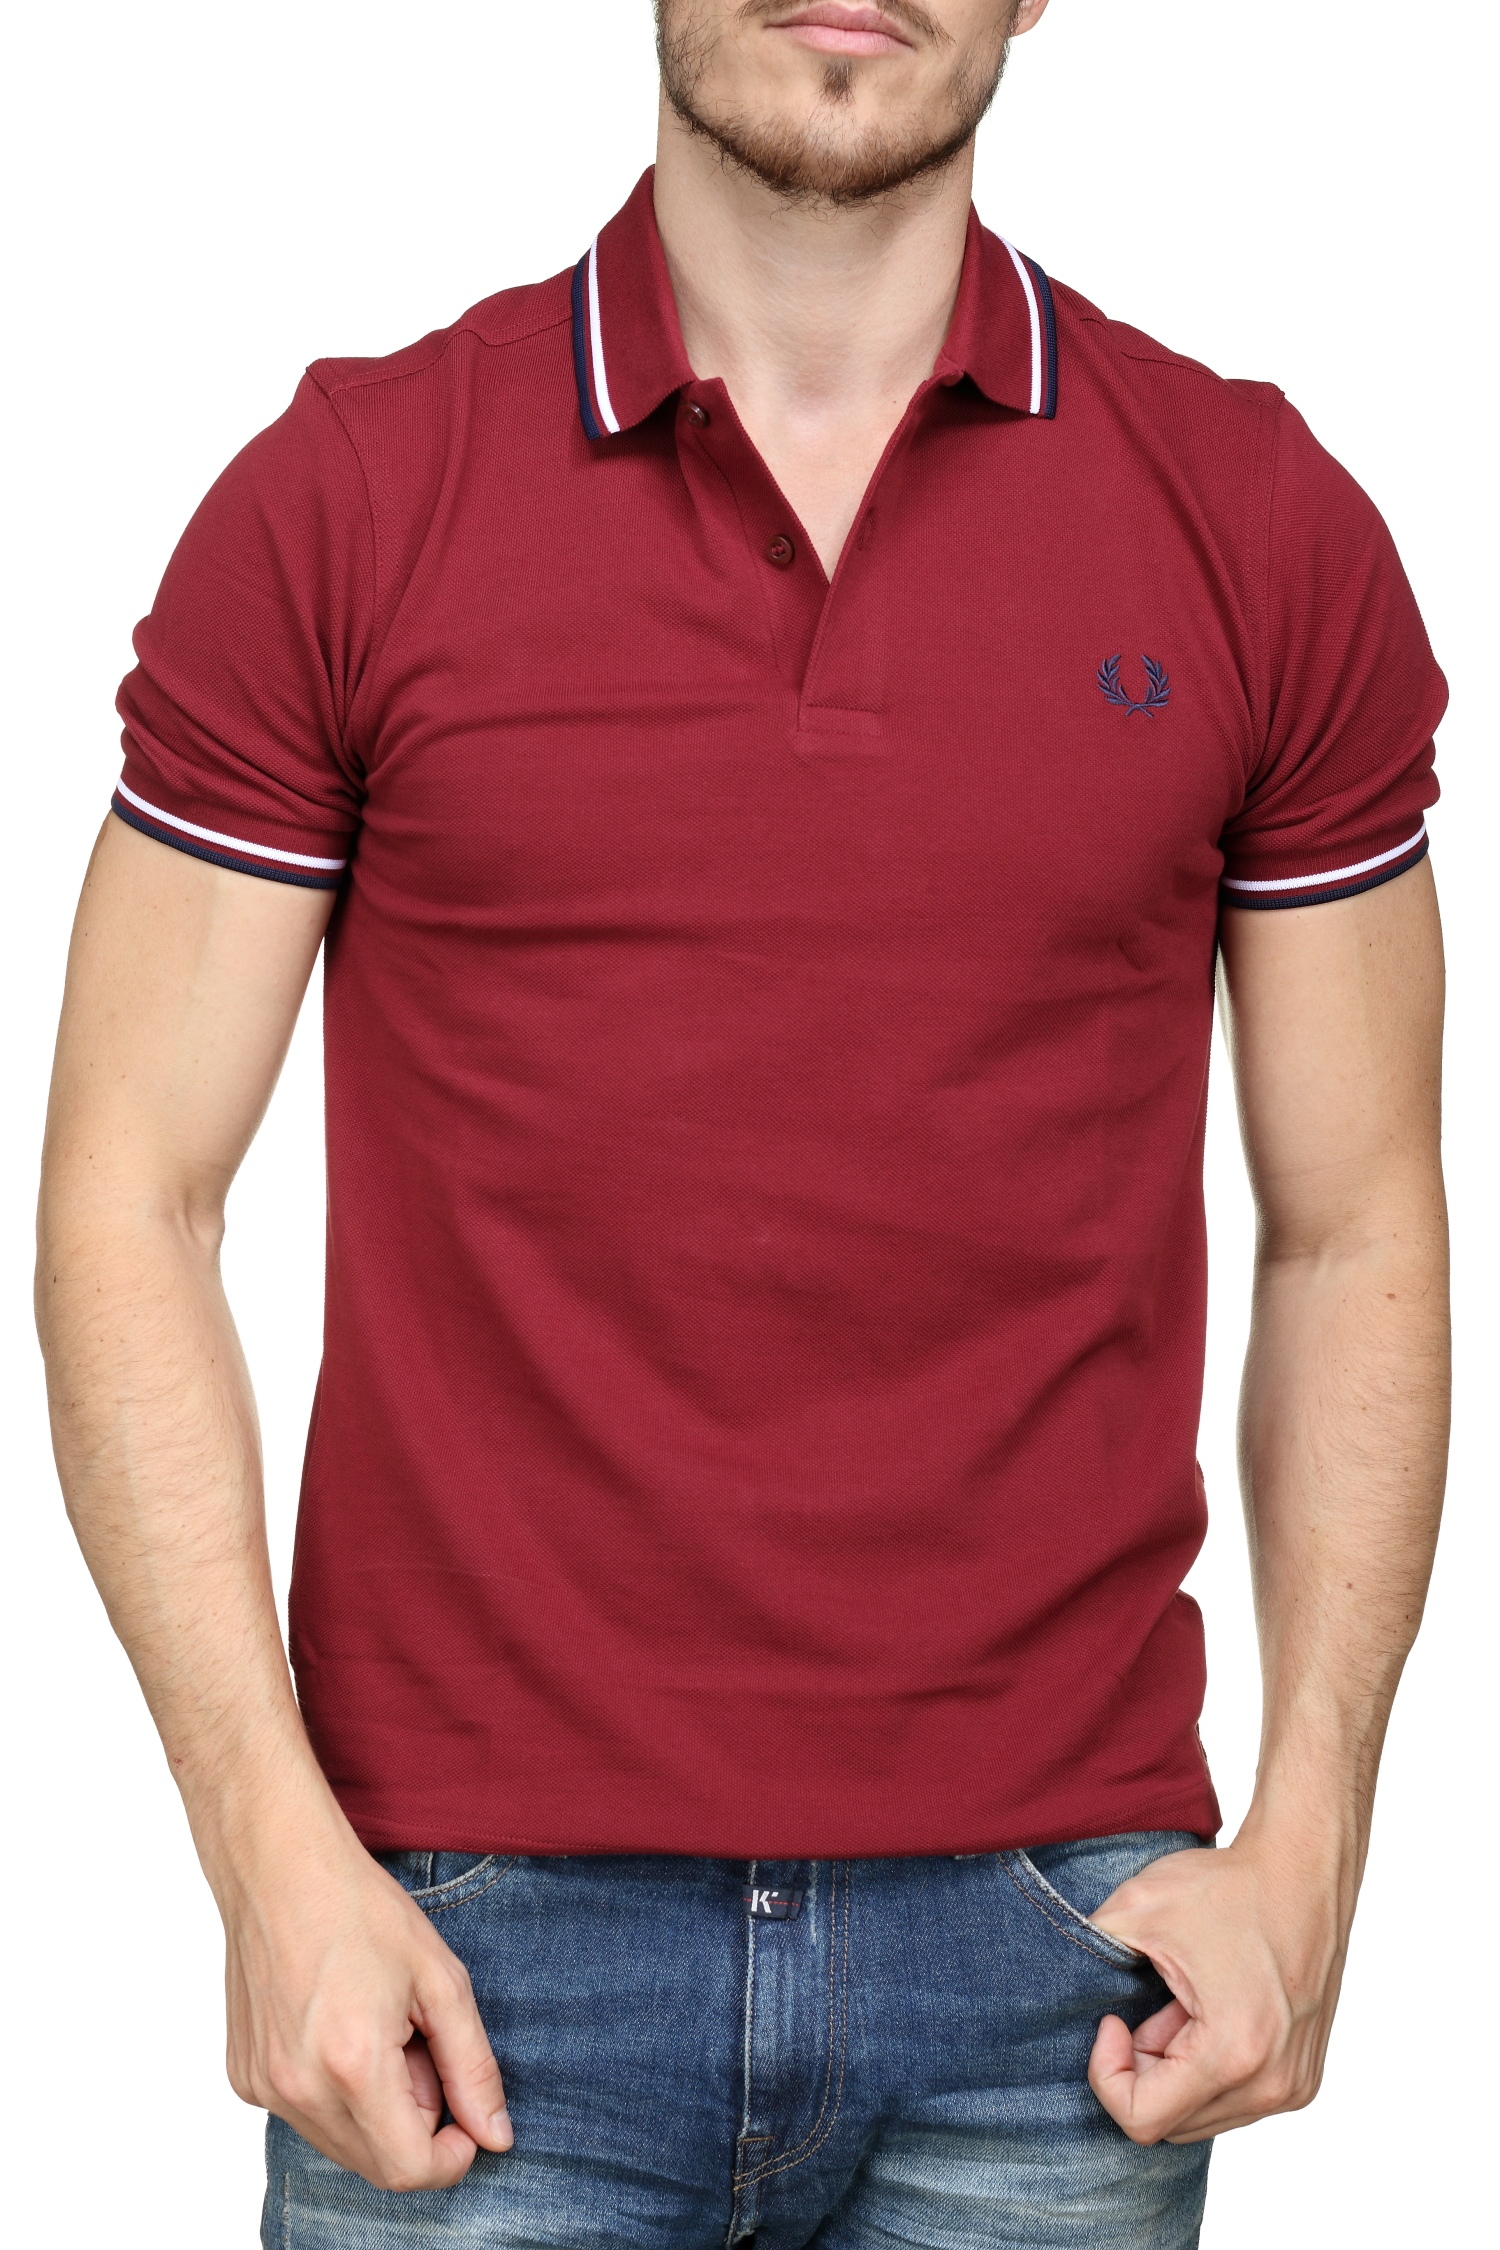 http://www.leadermode.com/177716/fred-perry-fpmm3600-d31-dark-red.jpg